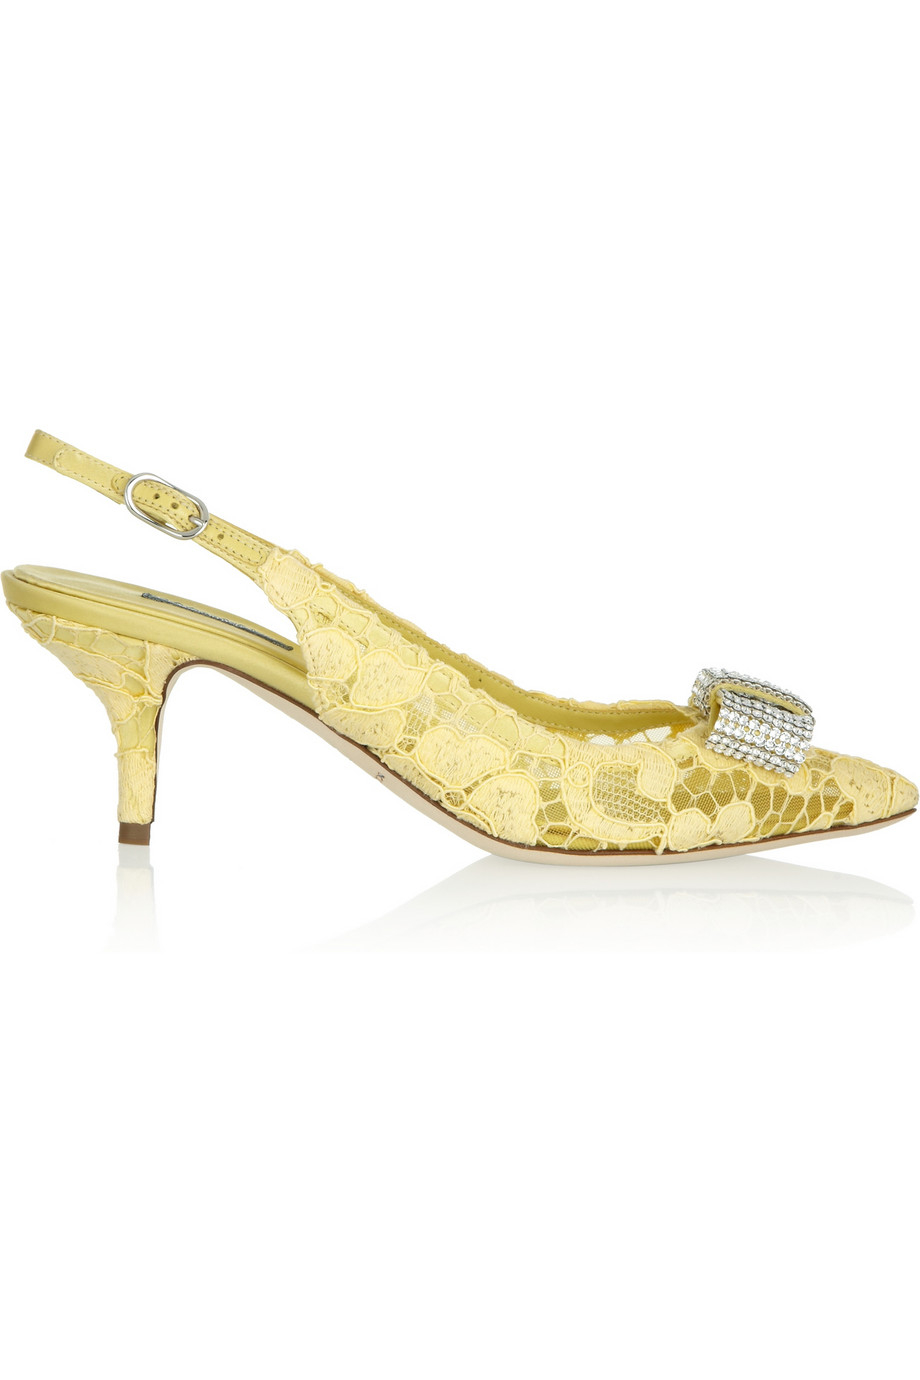 7f3ce755b29 Dolce   Gabbana Crystal-Embellished Lace Slingback Pumps in Yellow ...